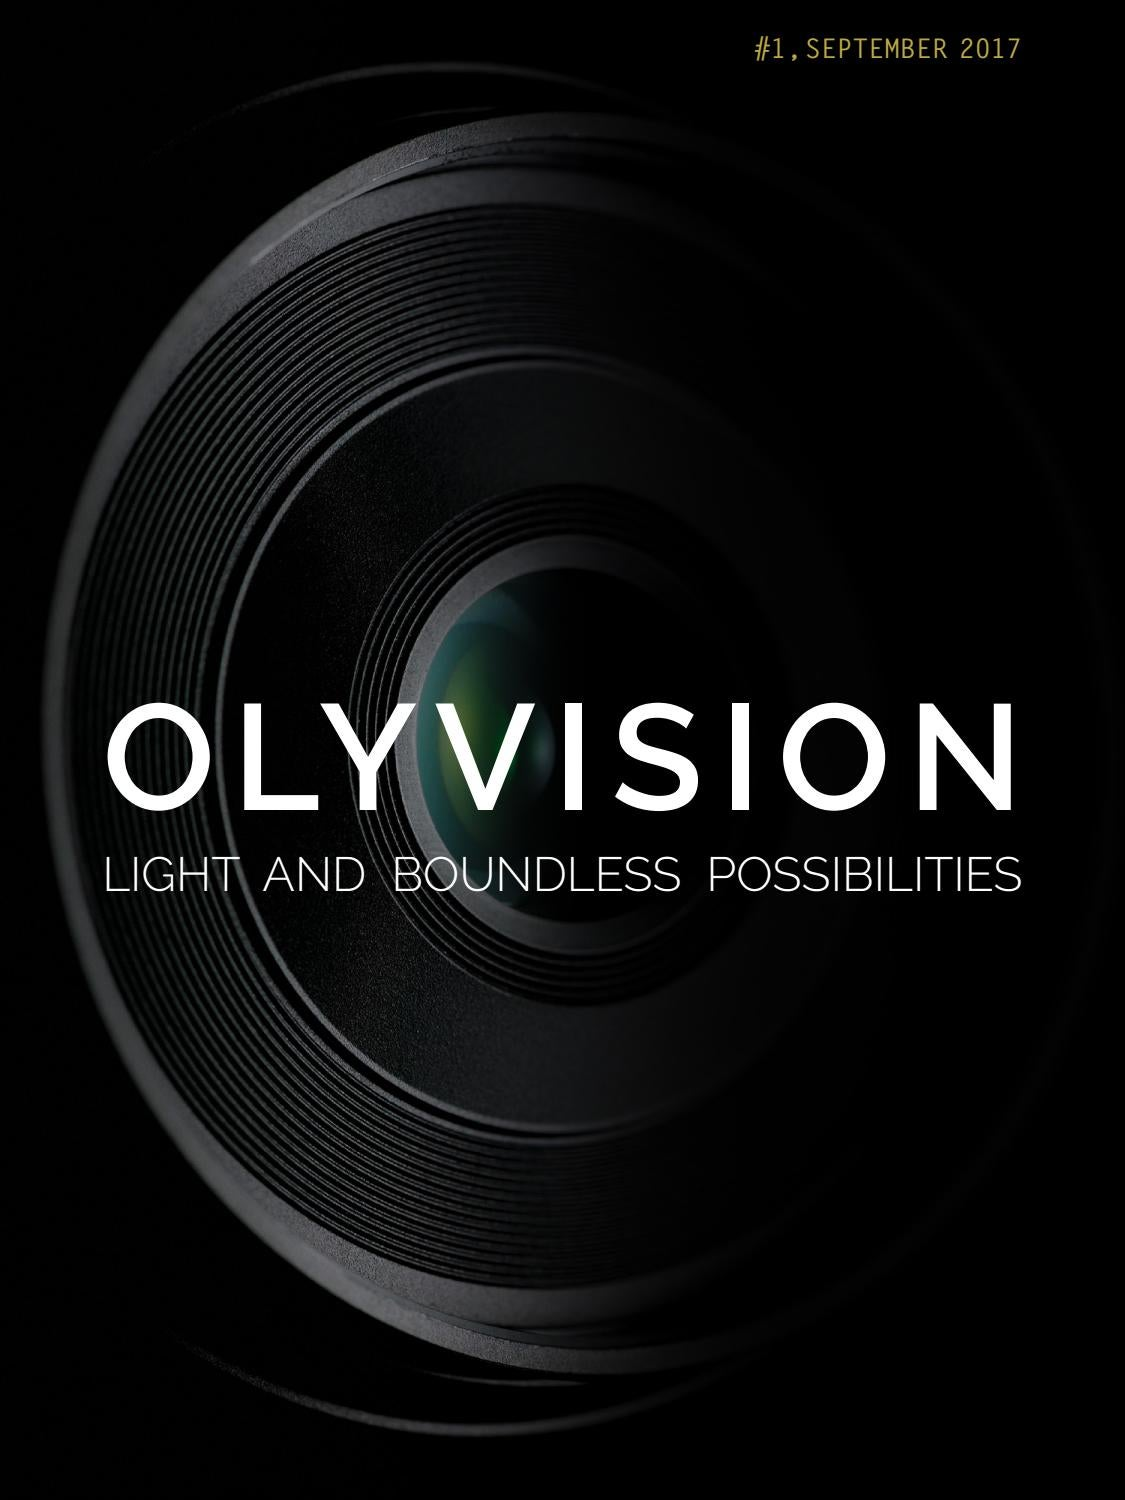 Olyvision 1 September 2017 By Ionut Ignat Issuu Olympus Pt Ep08 Underwater Housing For Omd Em5